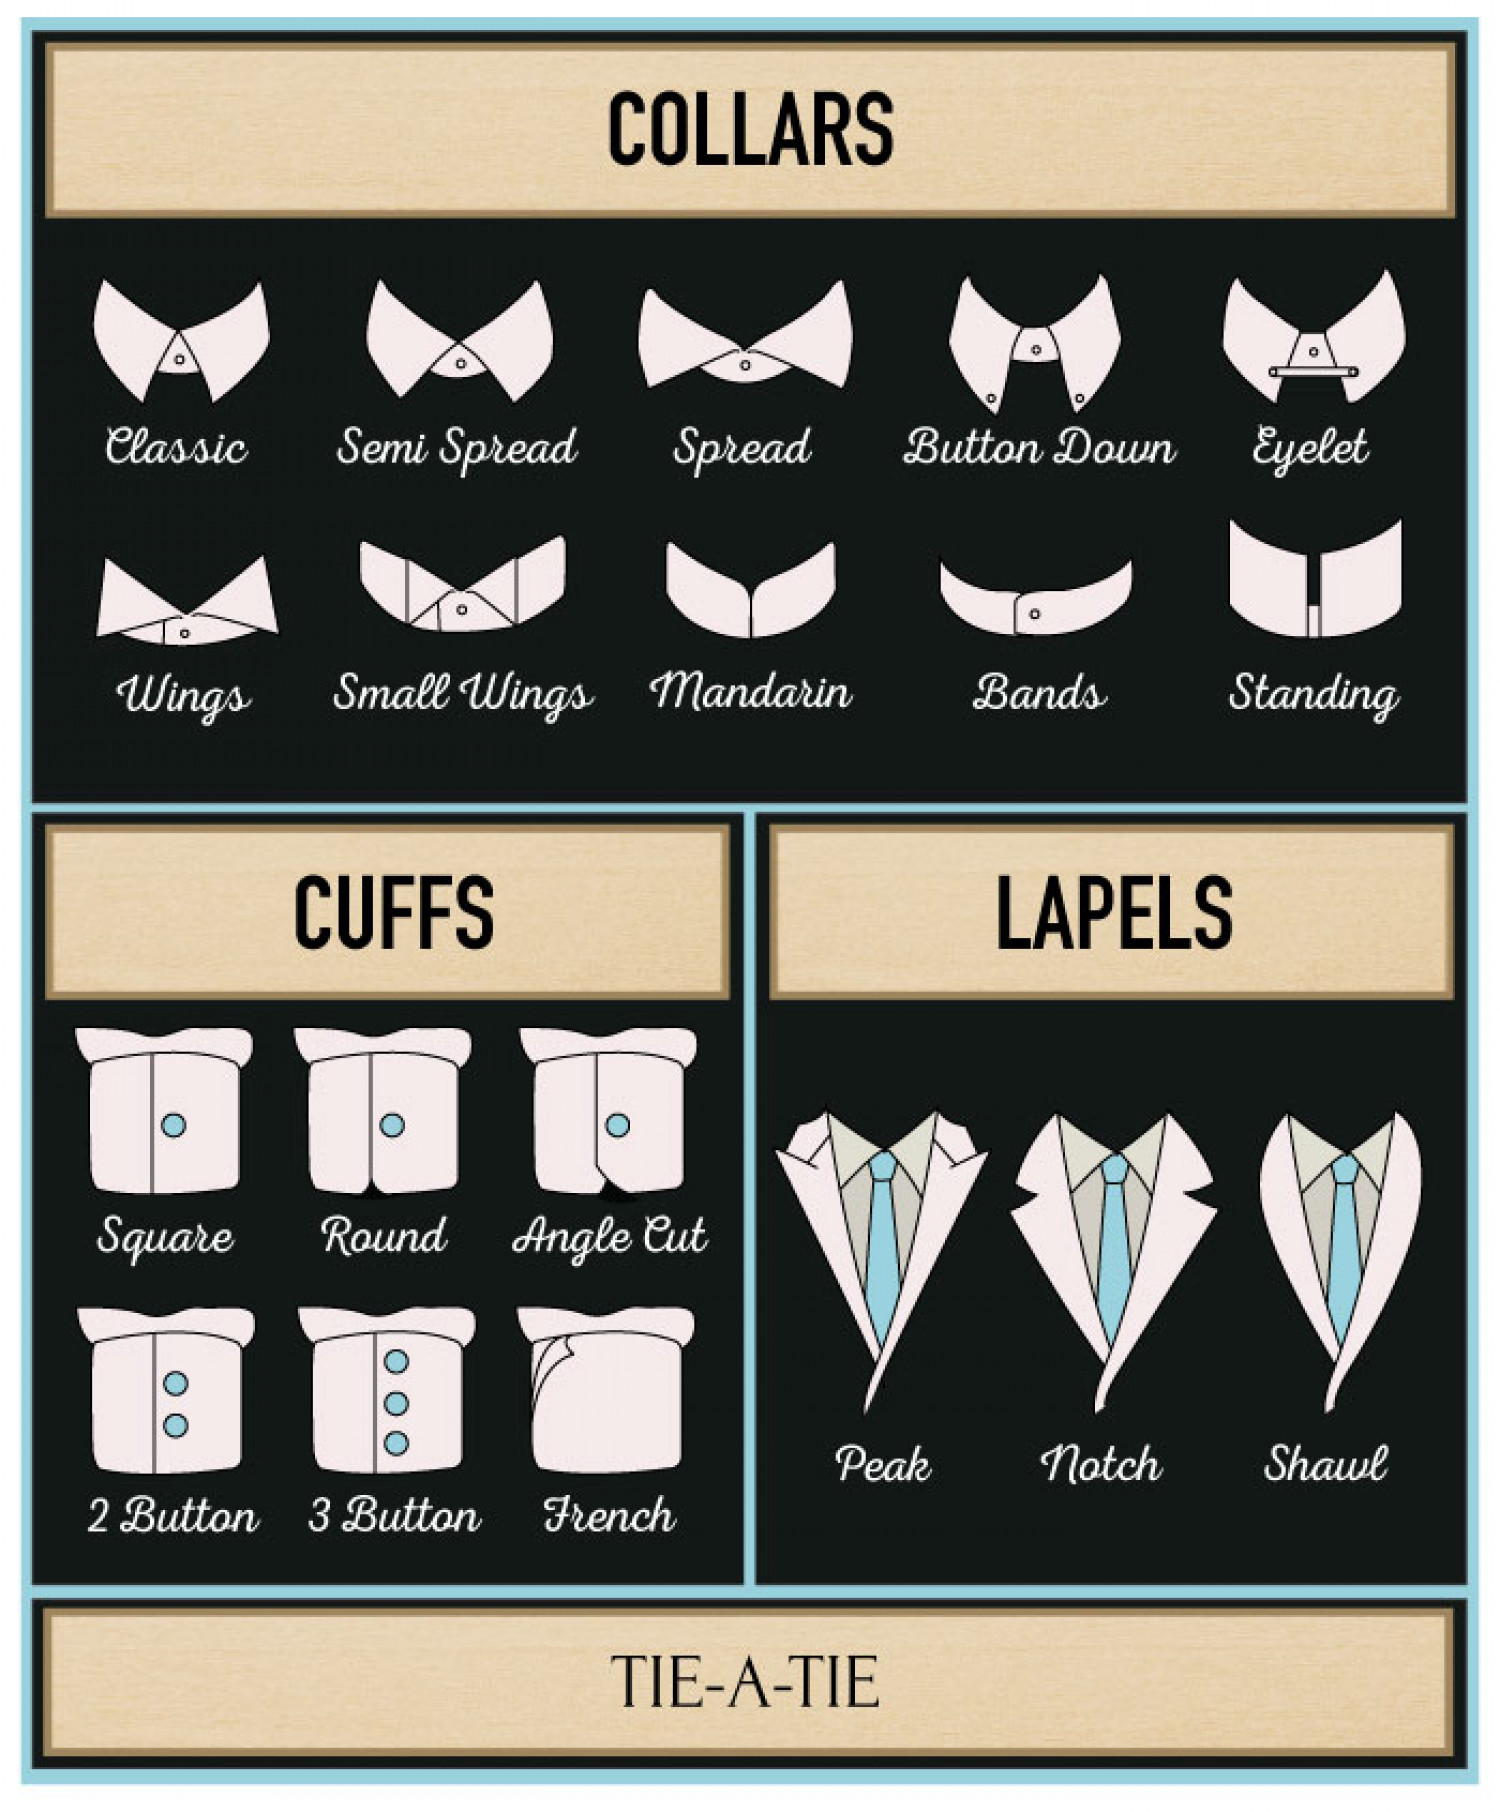 Popular Collars And Cuff Styles For Mens Dress Shirts